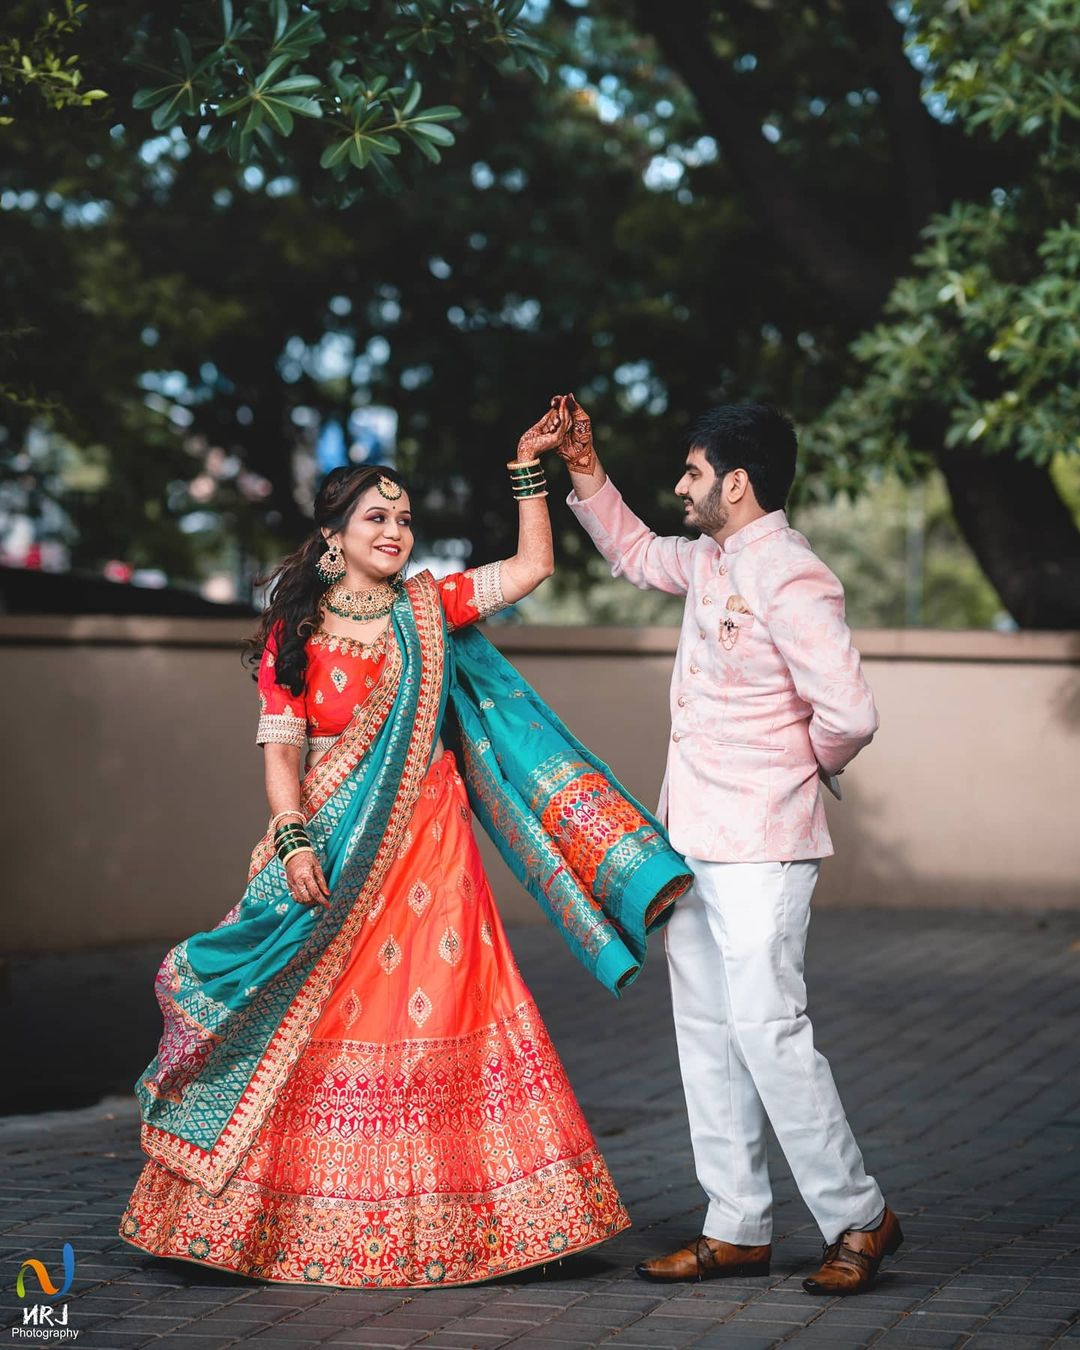 dance poses for couple portraits